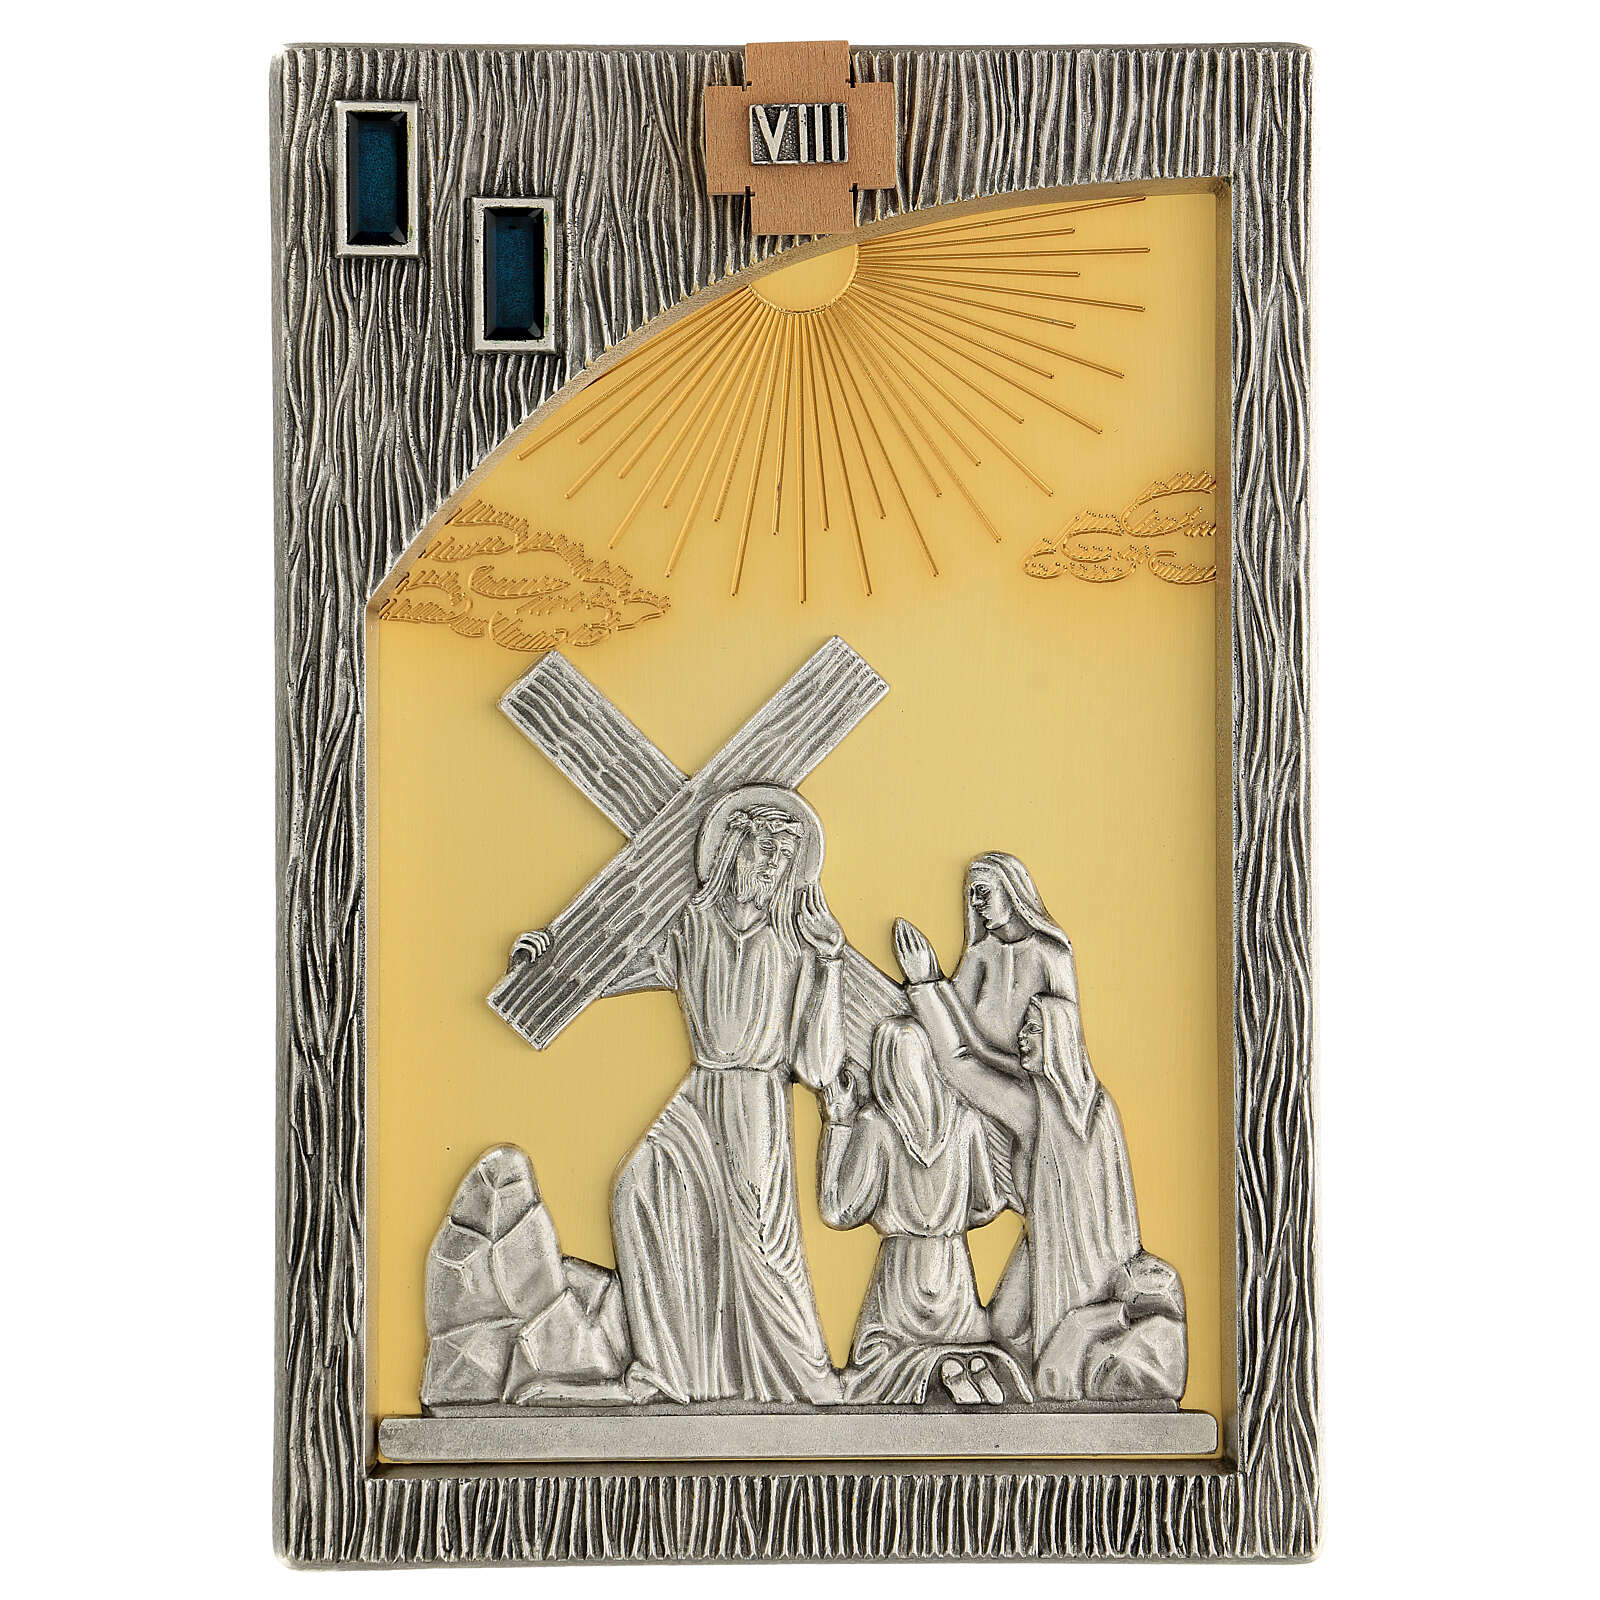 Way of the cross 14 bicolored stations cast brass 12x8 in 4